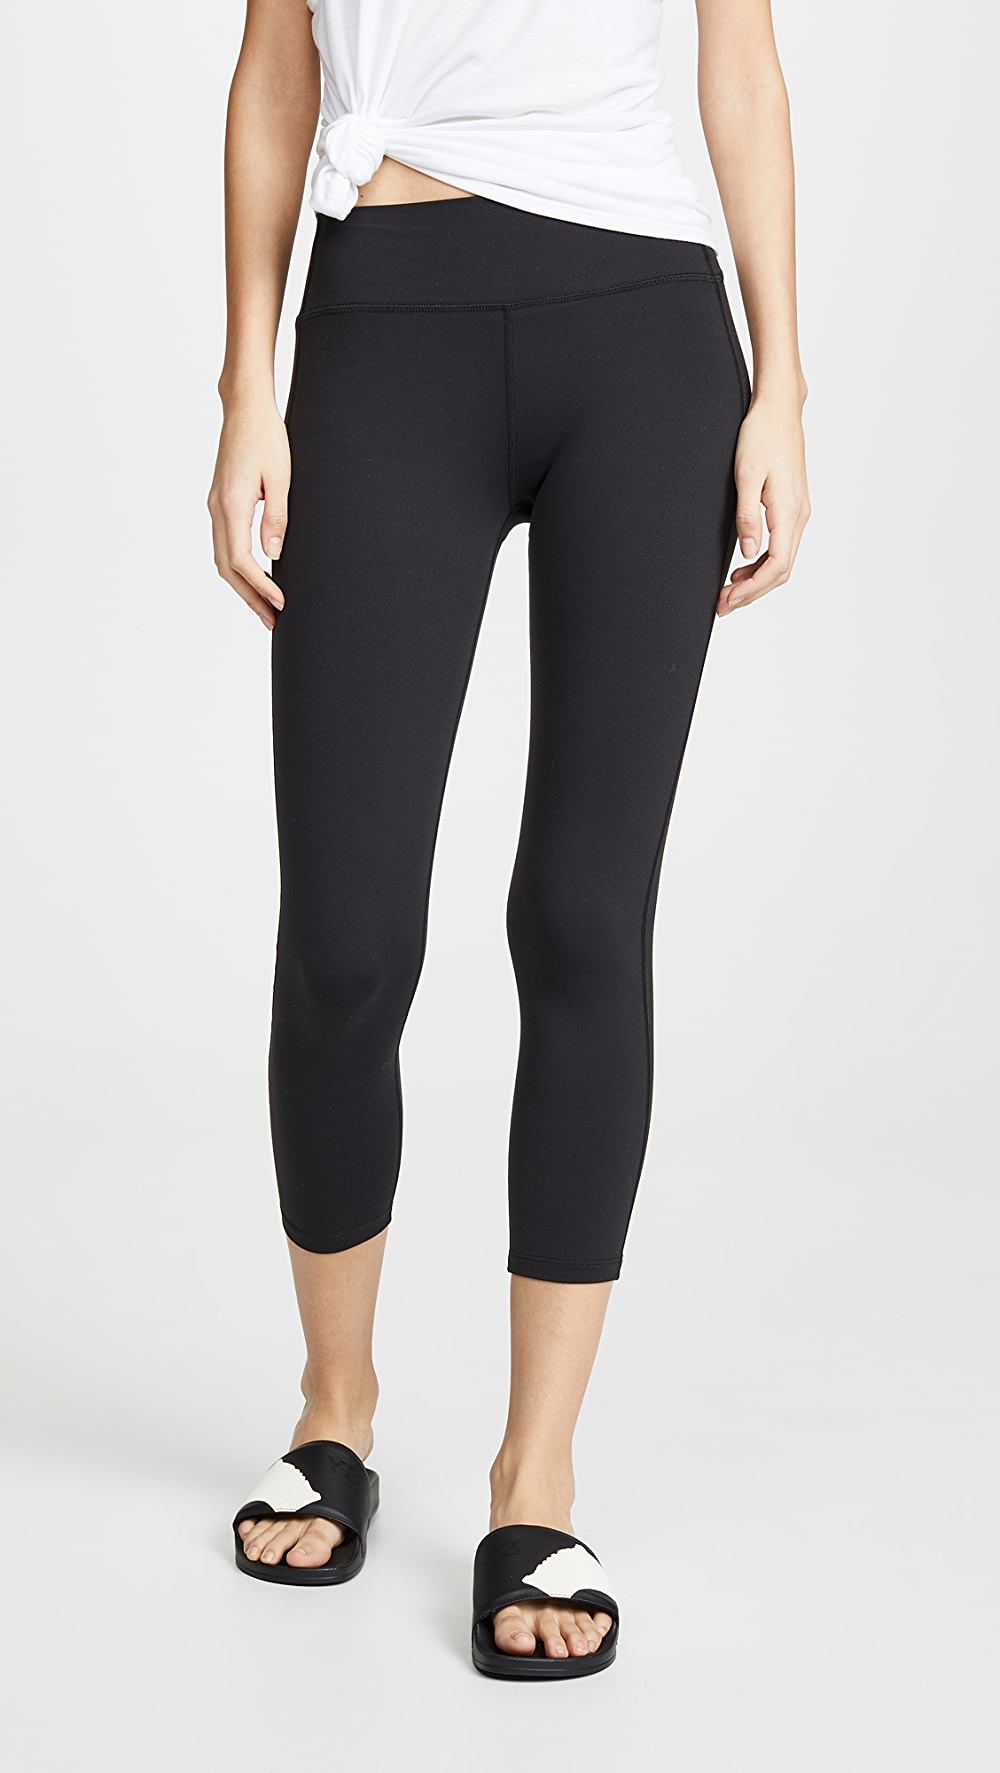 2019 New Style Splits59 - Stride Mid Rise Leggings High Quality Materials